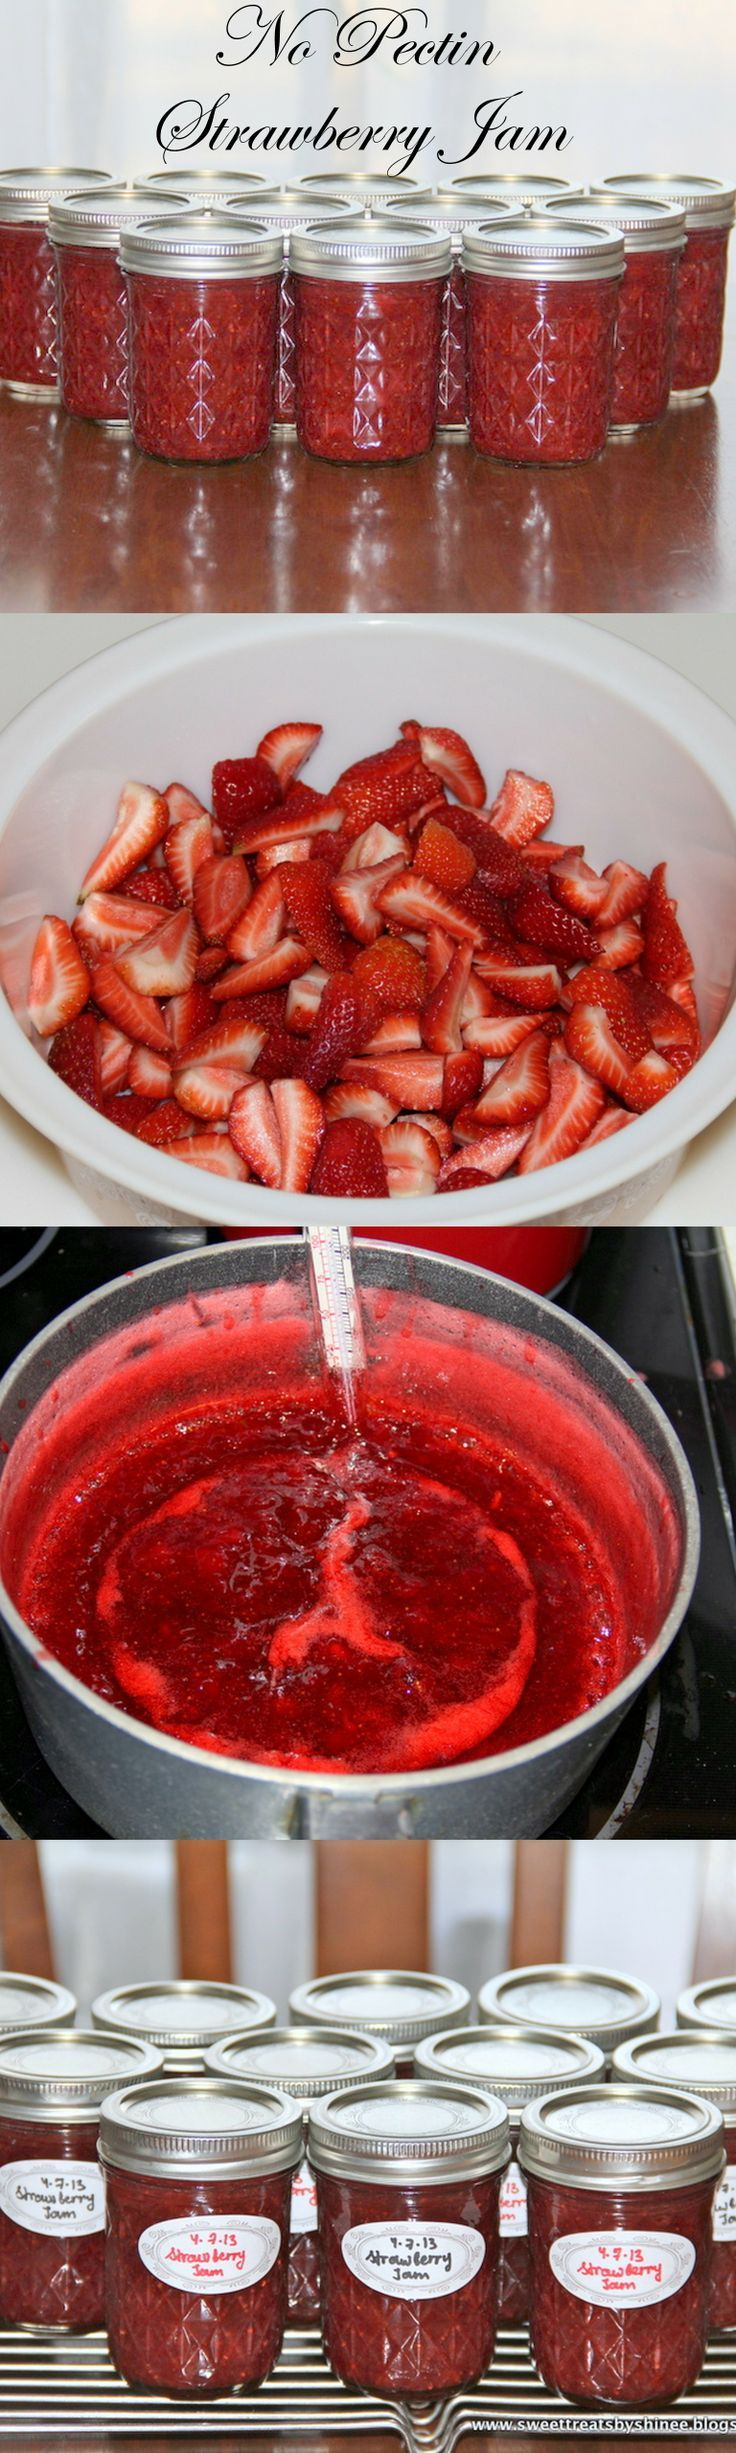 Easy Strawberry Jam (No Pectin). #strawberry #jam hinee.com/easy-strawberry-jam-no-pectin/ ❤️